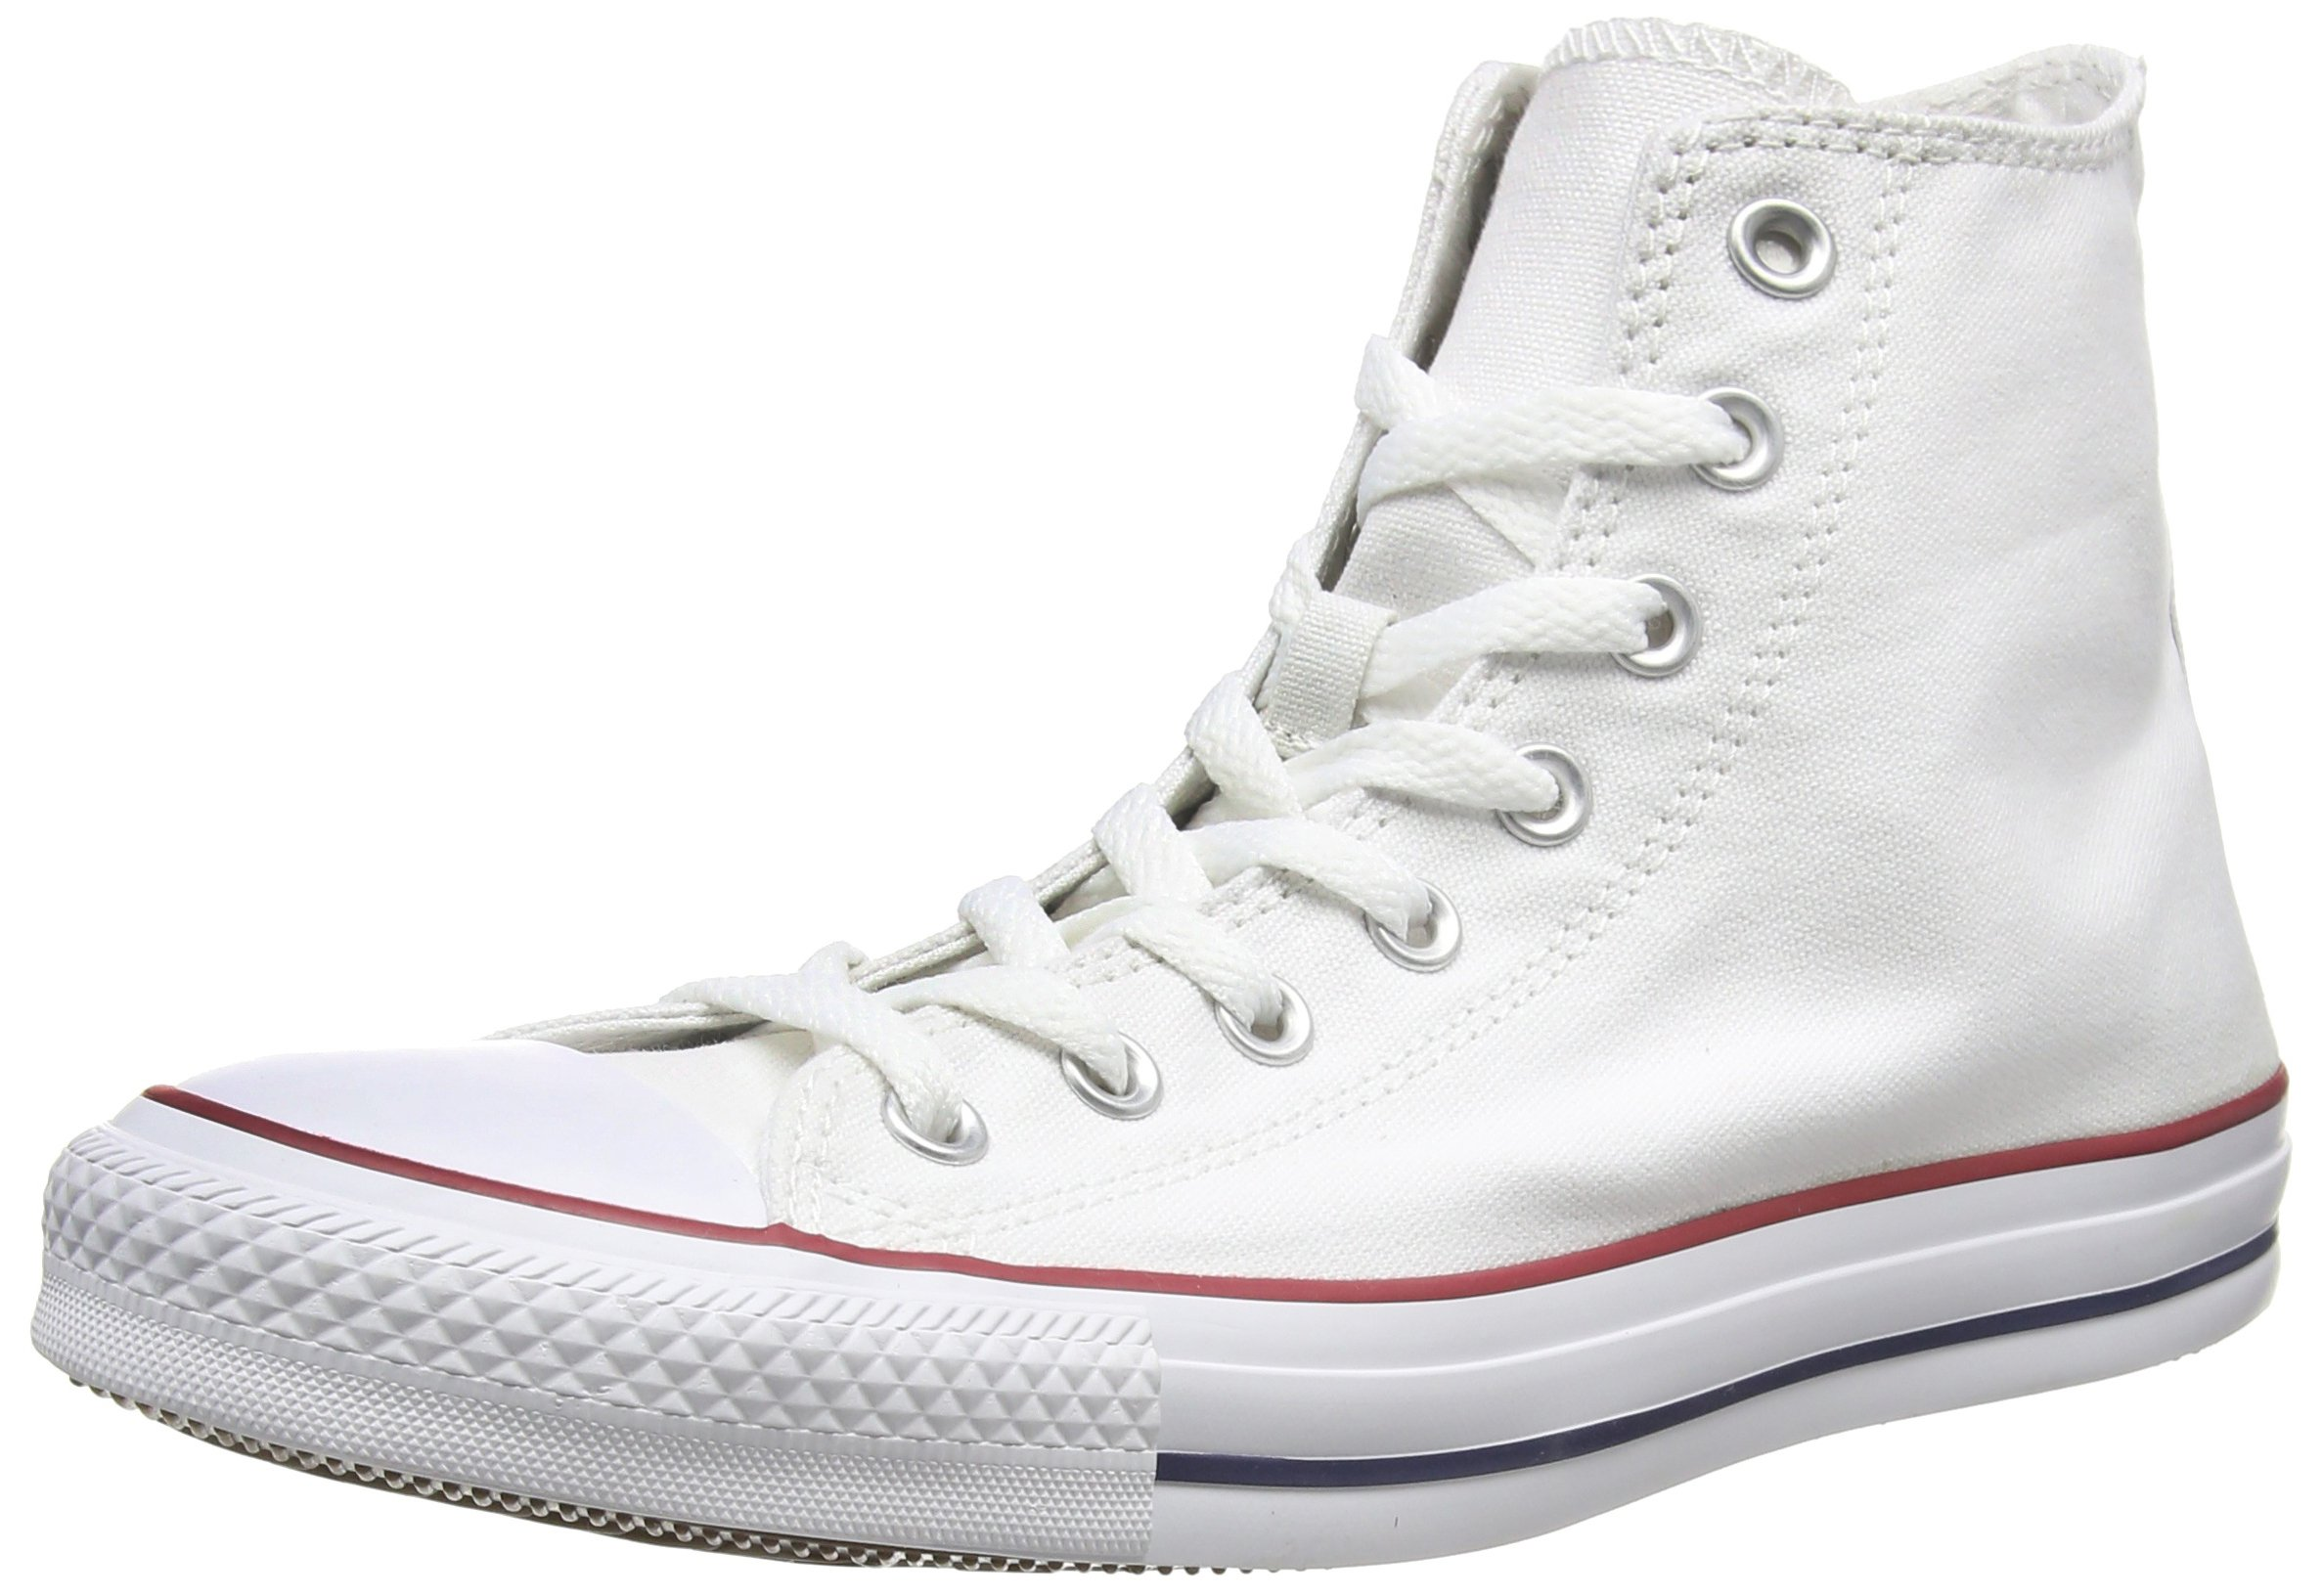 Converse Chuck Taylor All Star High Top Shoe, optical white, 6.5 M US